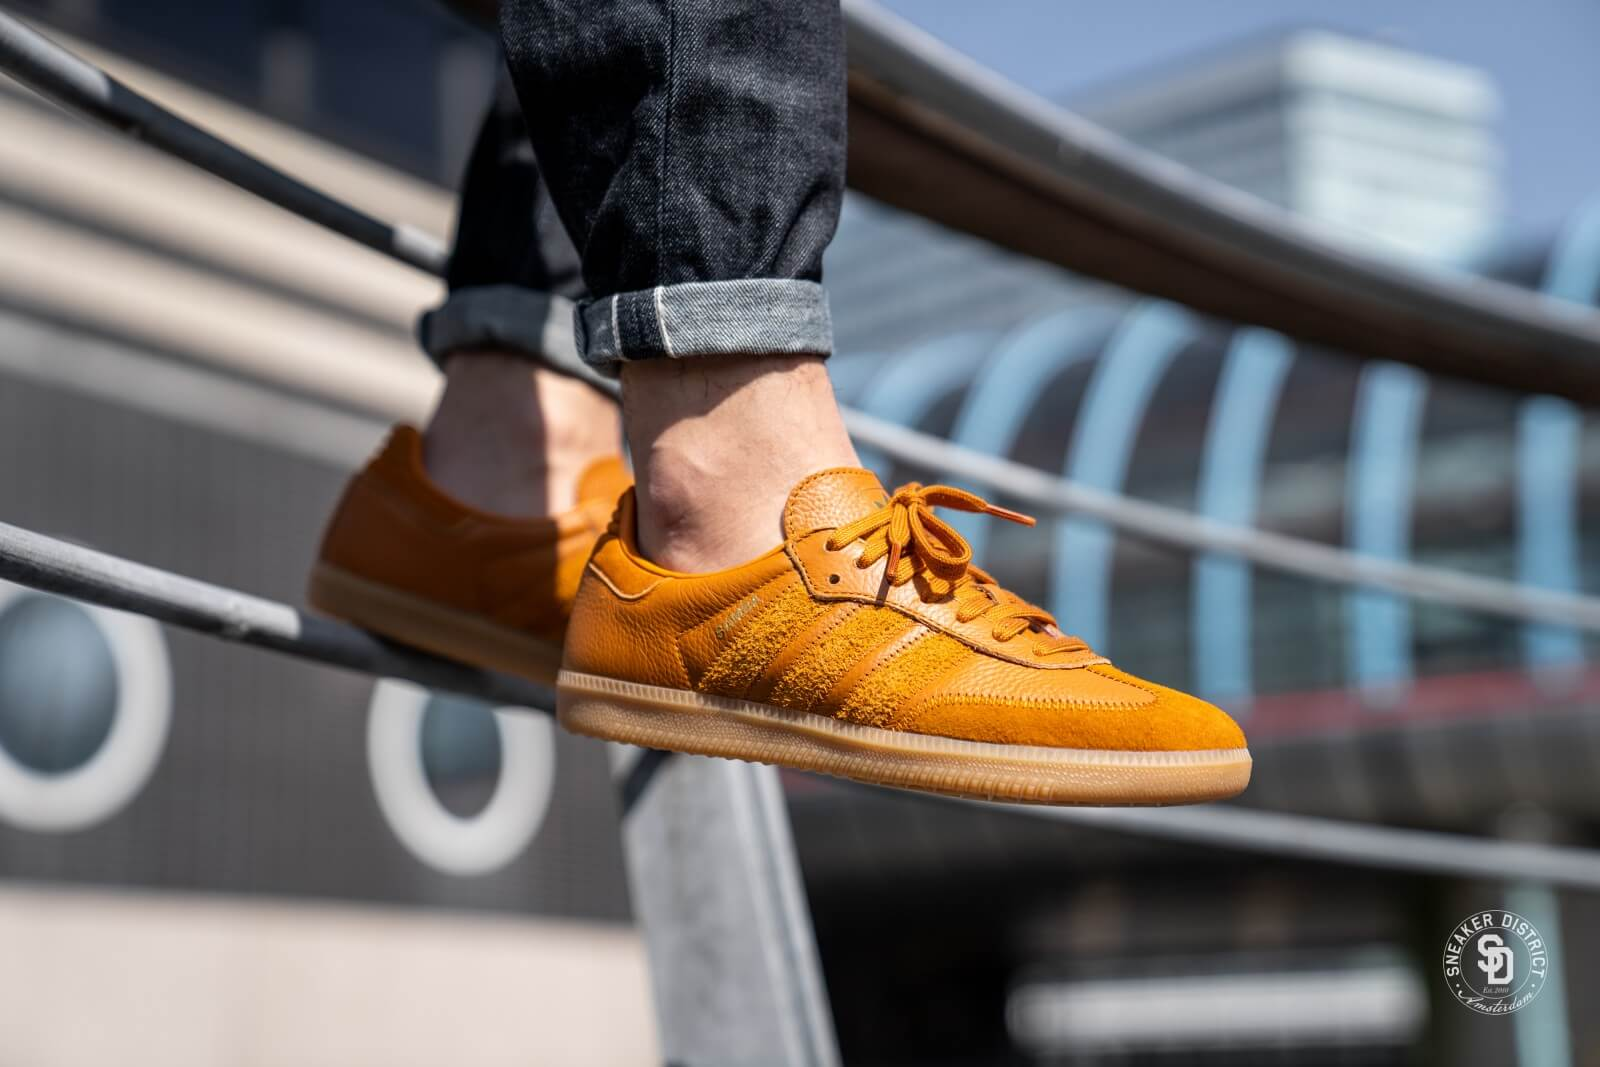 Adidas Samba OG FT Craft Ochre/Gold - CG6134